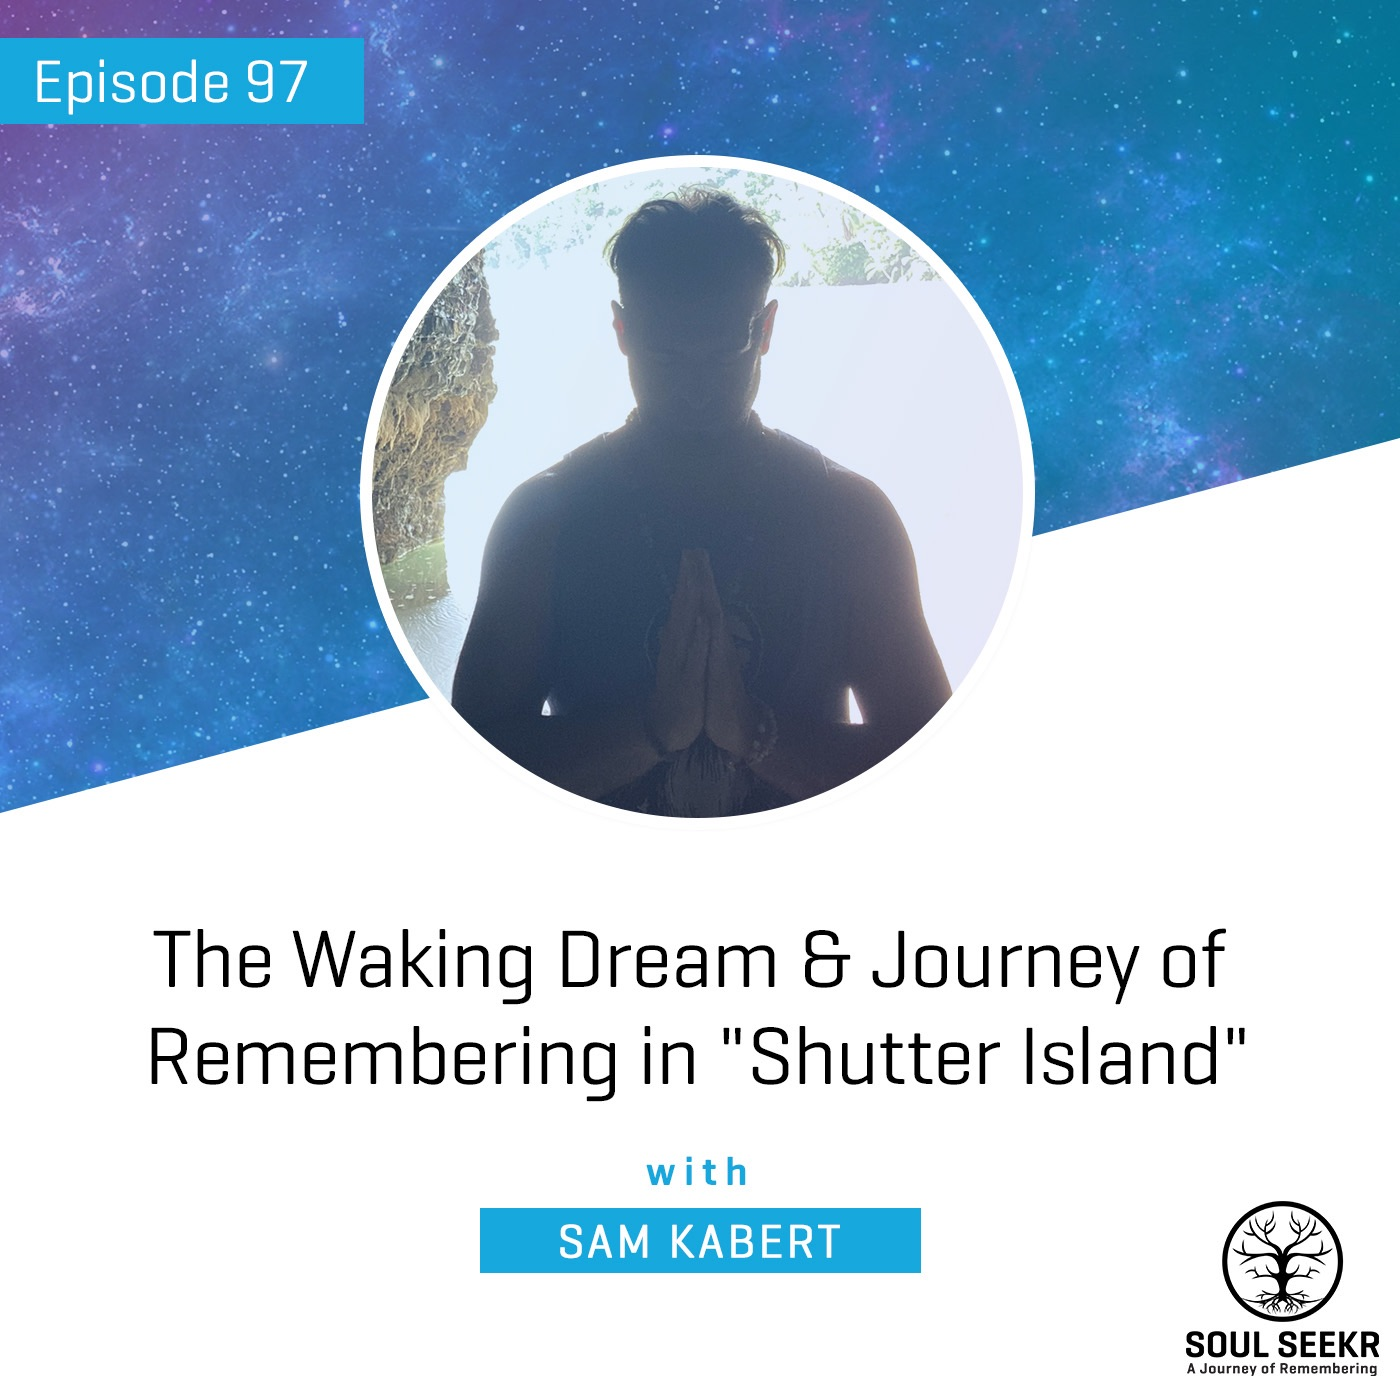 #97: The Waking Dream & Journey of Remembering in